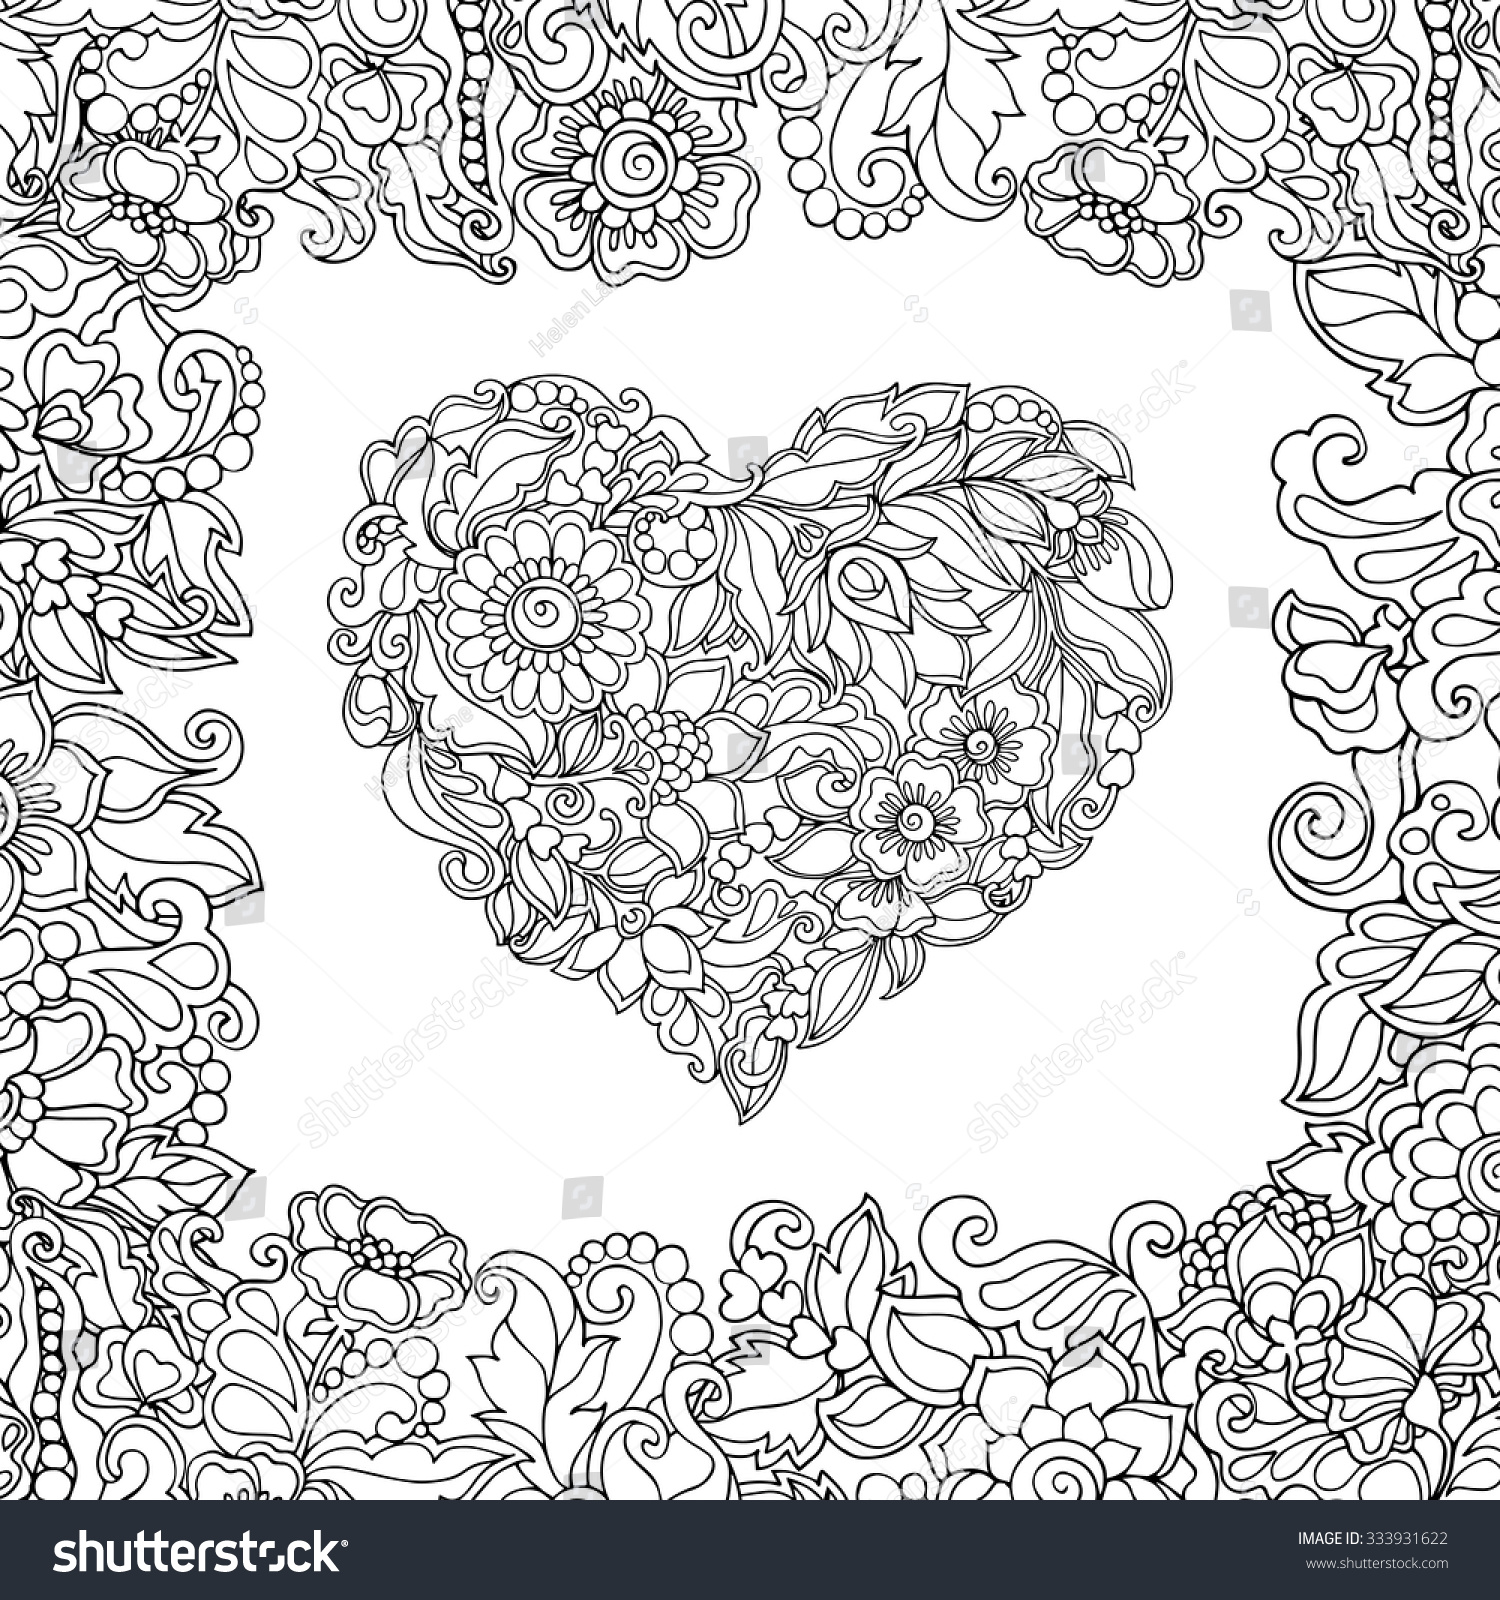 coloring book for adult and older children coloring page with vintage flowers pattern heart - Coloring Pages Flowers Hearts